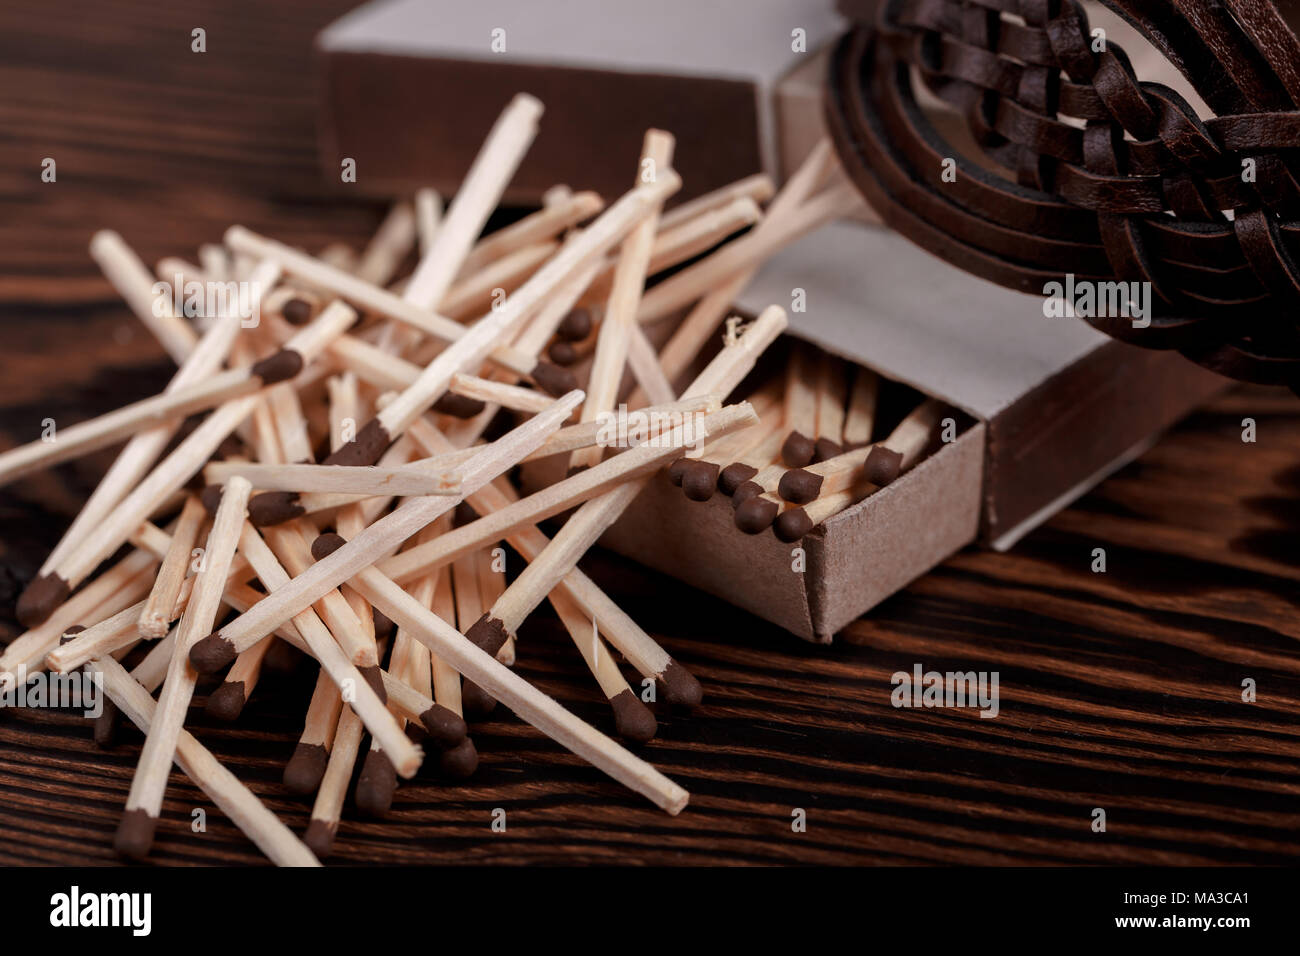 Matches in open match box on wood background - Stock Image